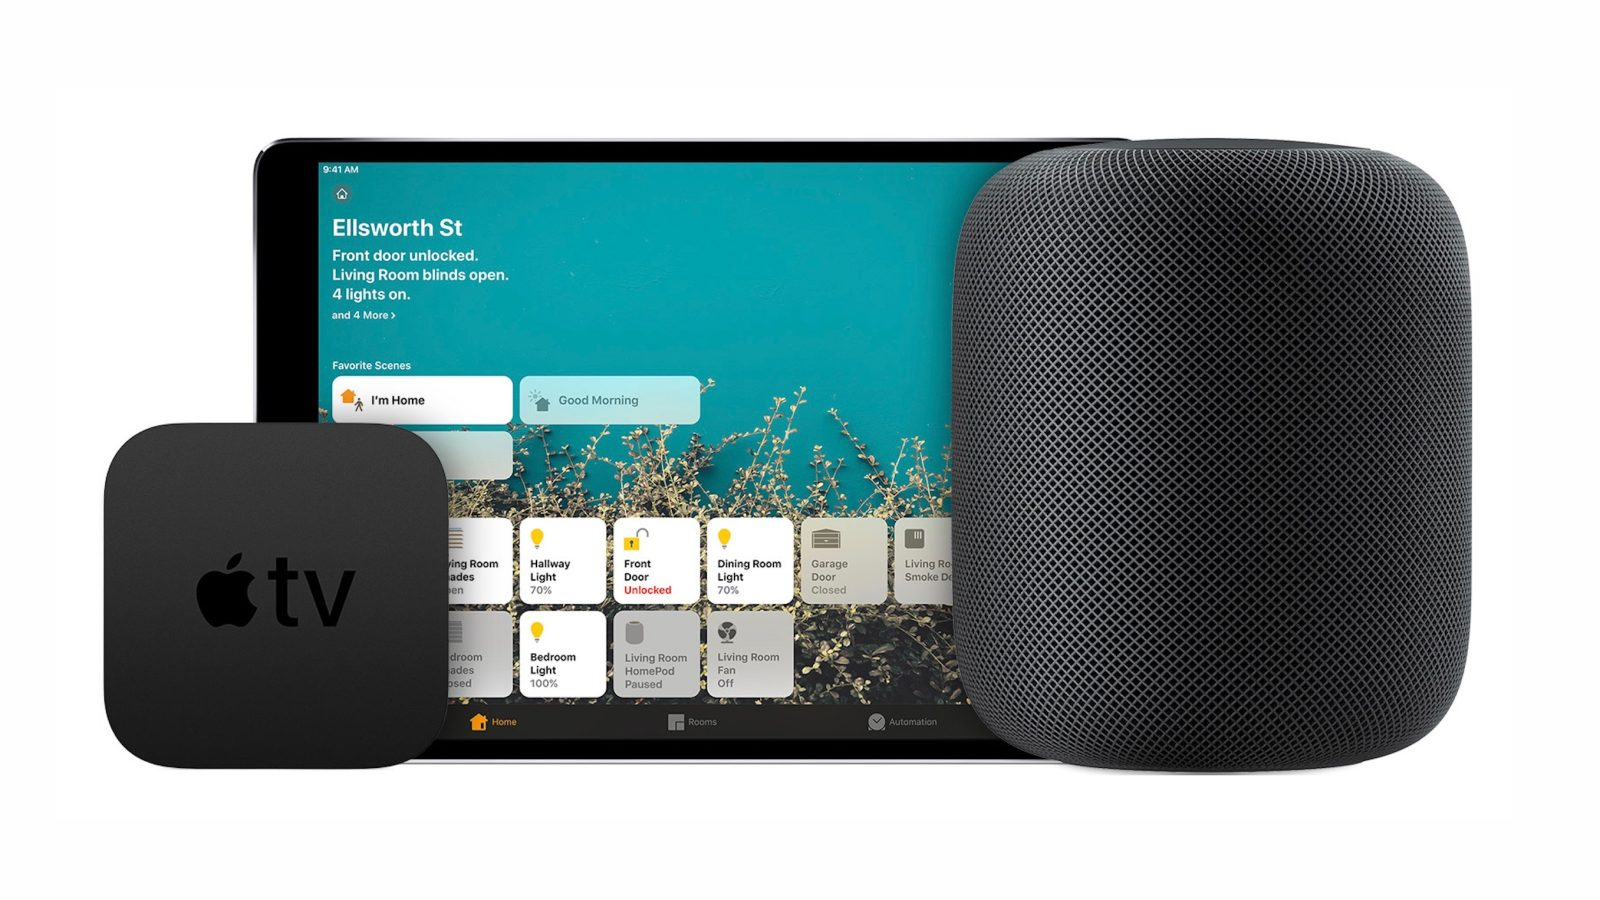 Gruber: Apple loses money on HomePod hardware, Apple TV 4K sold at cost